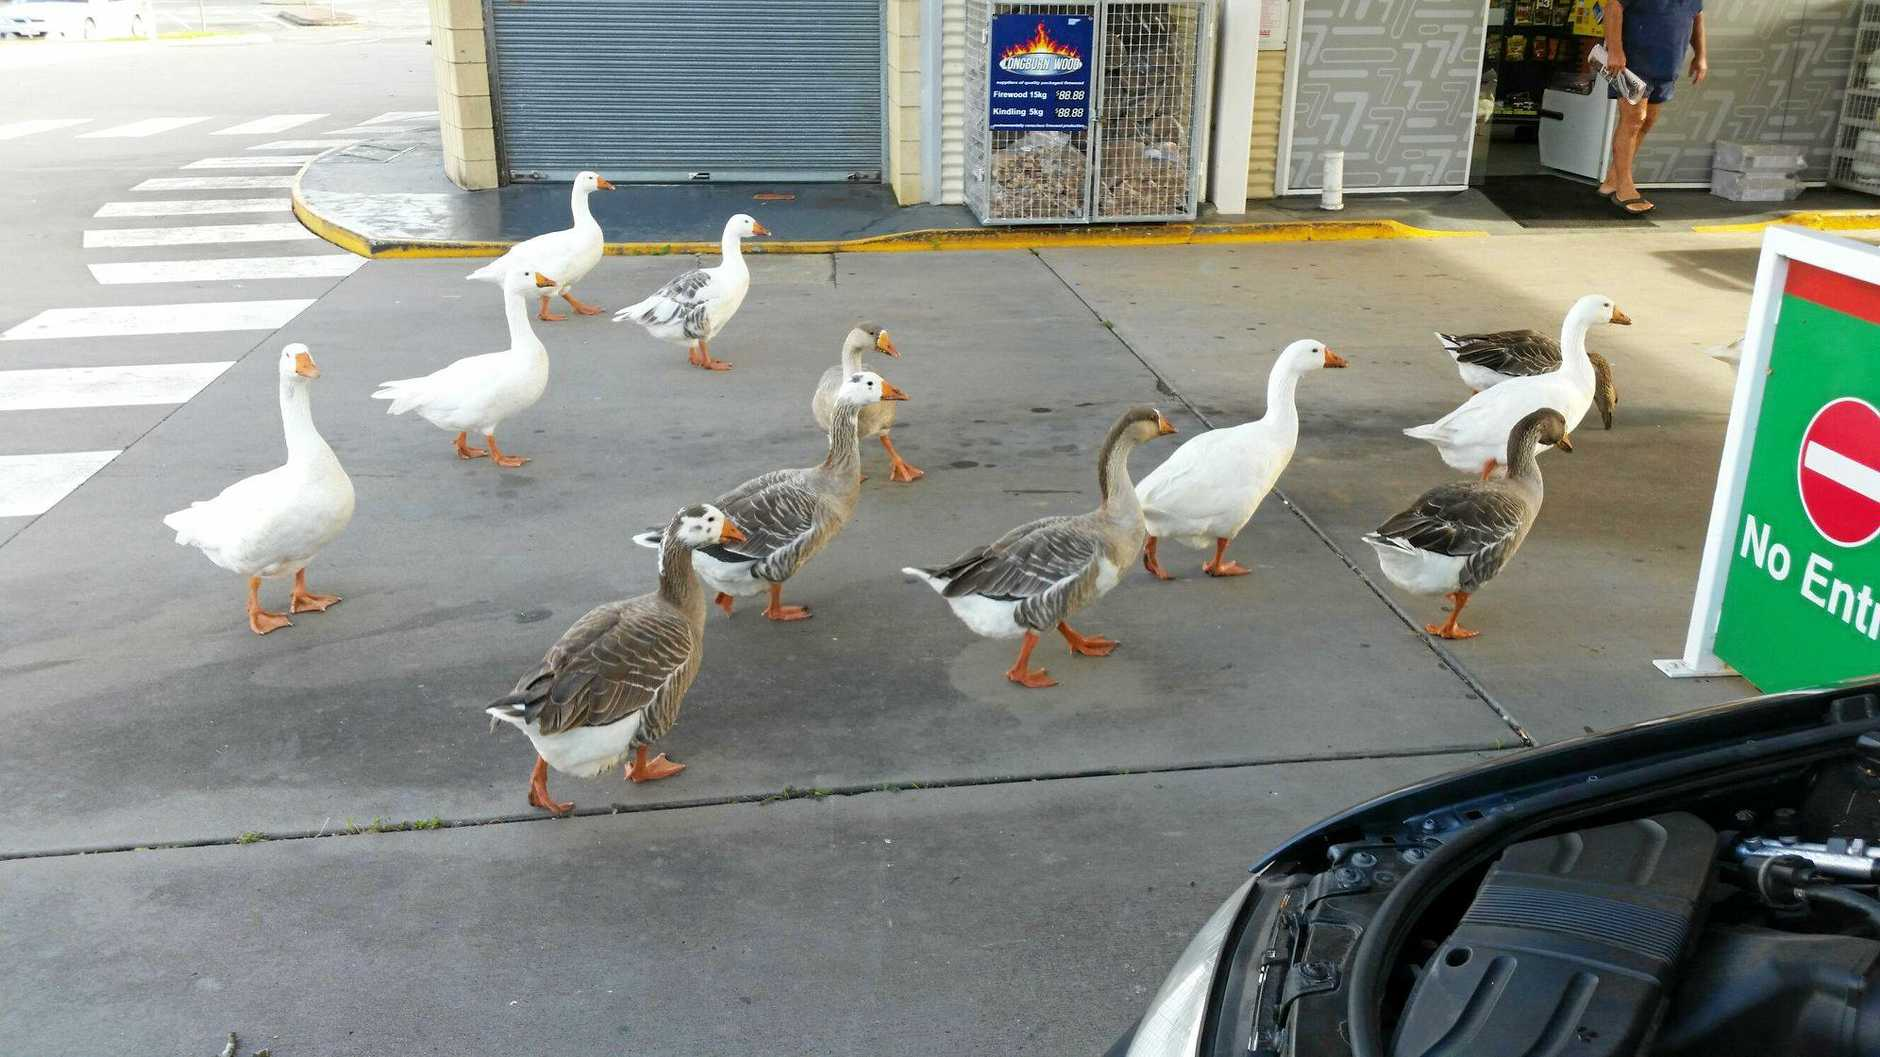 Brian George snapped this picture of wandering Geese at the Puma petrol station.